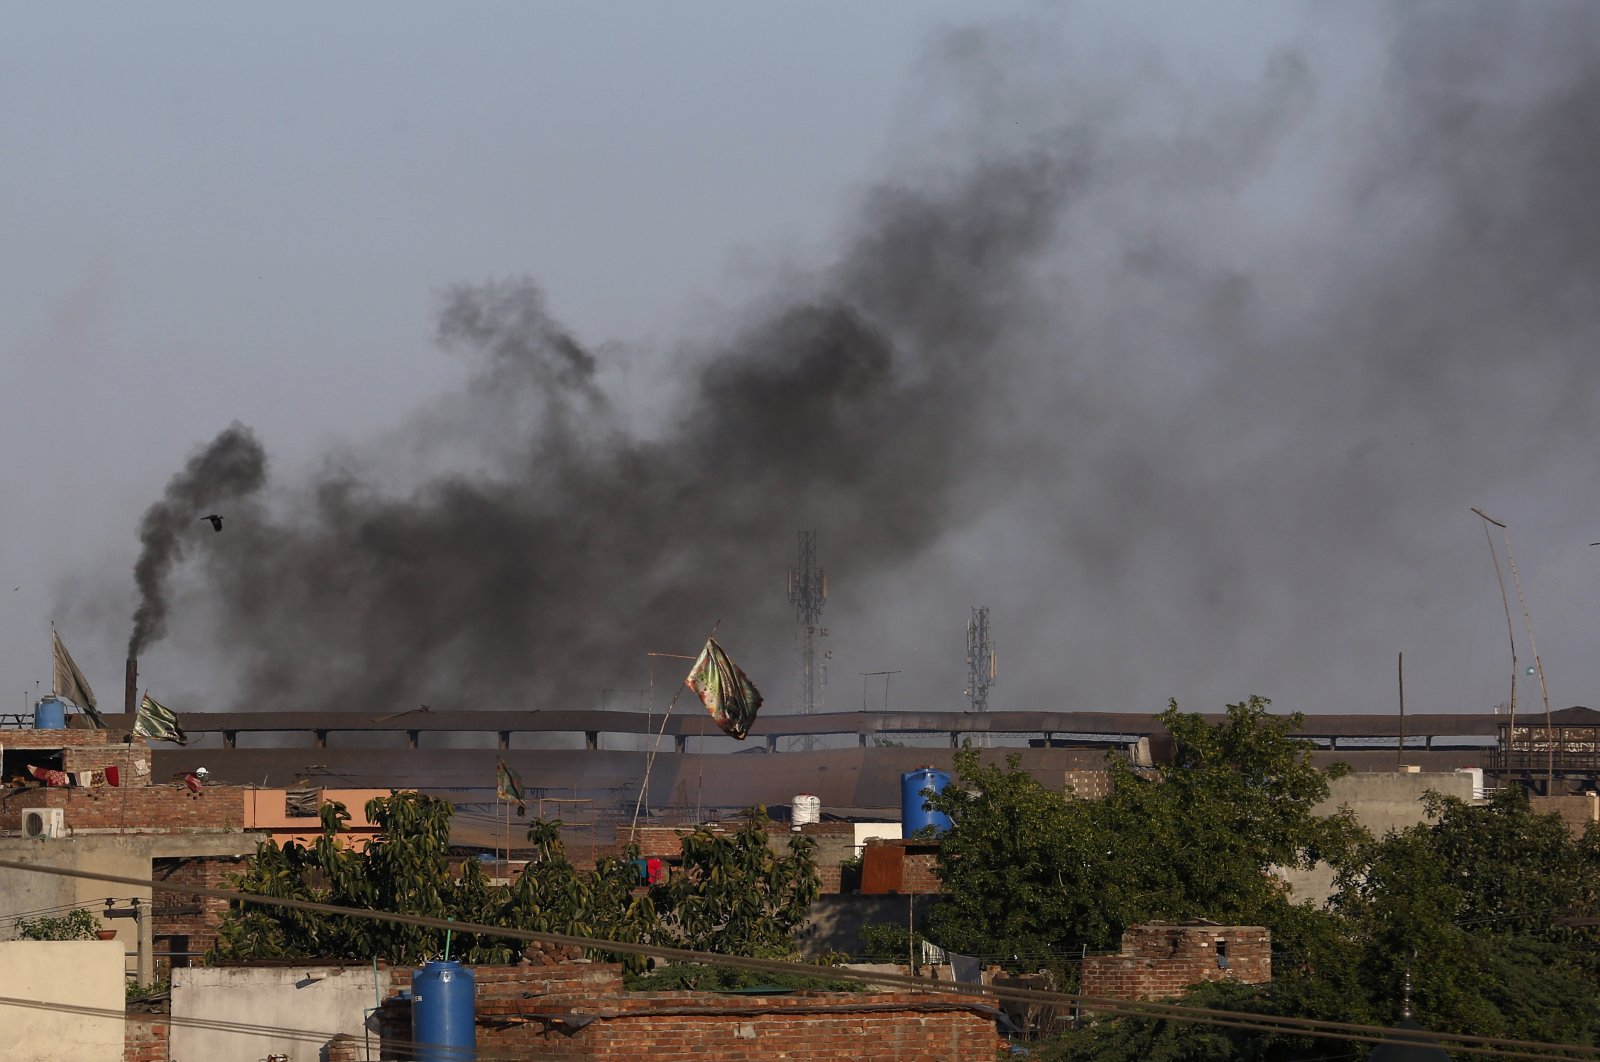 Black smoke is emitted from the chimneys of a factory on the outskirts of Lahore, Pakistan, April 23, 2021. (AP Photo)